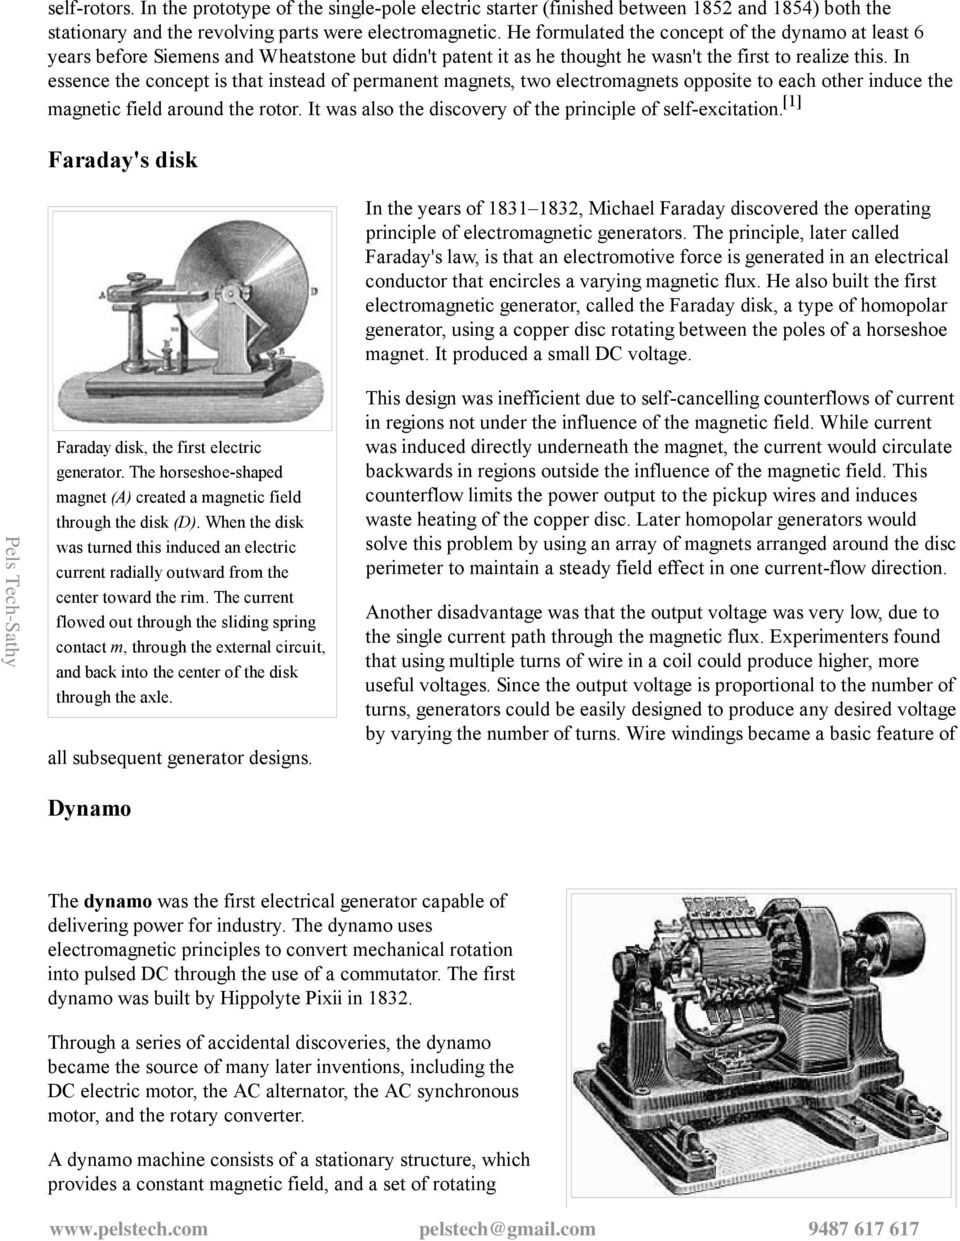 Electric Generator Electrostatic Induction The Triboelectric Effect Faraday Invention Of Motor And In Essence Concept Is That Instead Permanent Magnets Two Electromagnets Opposite To Each